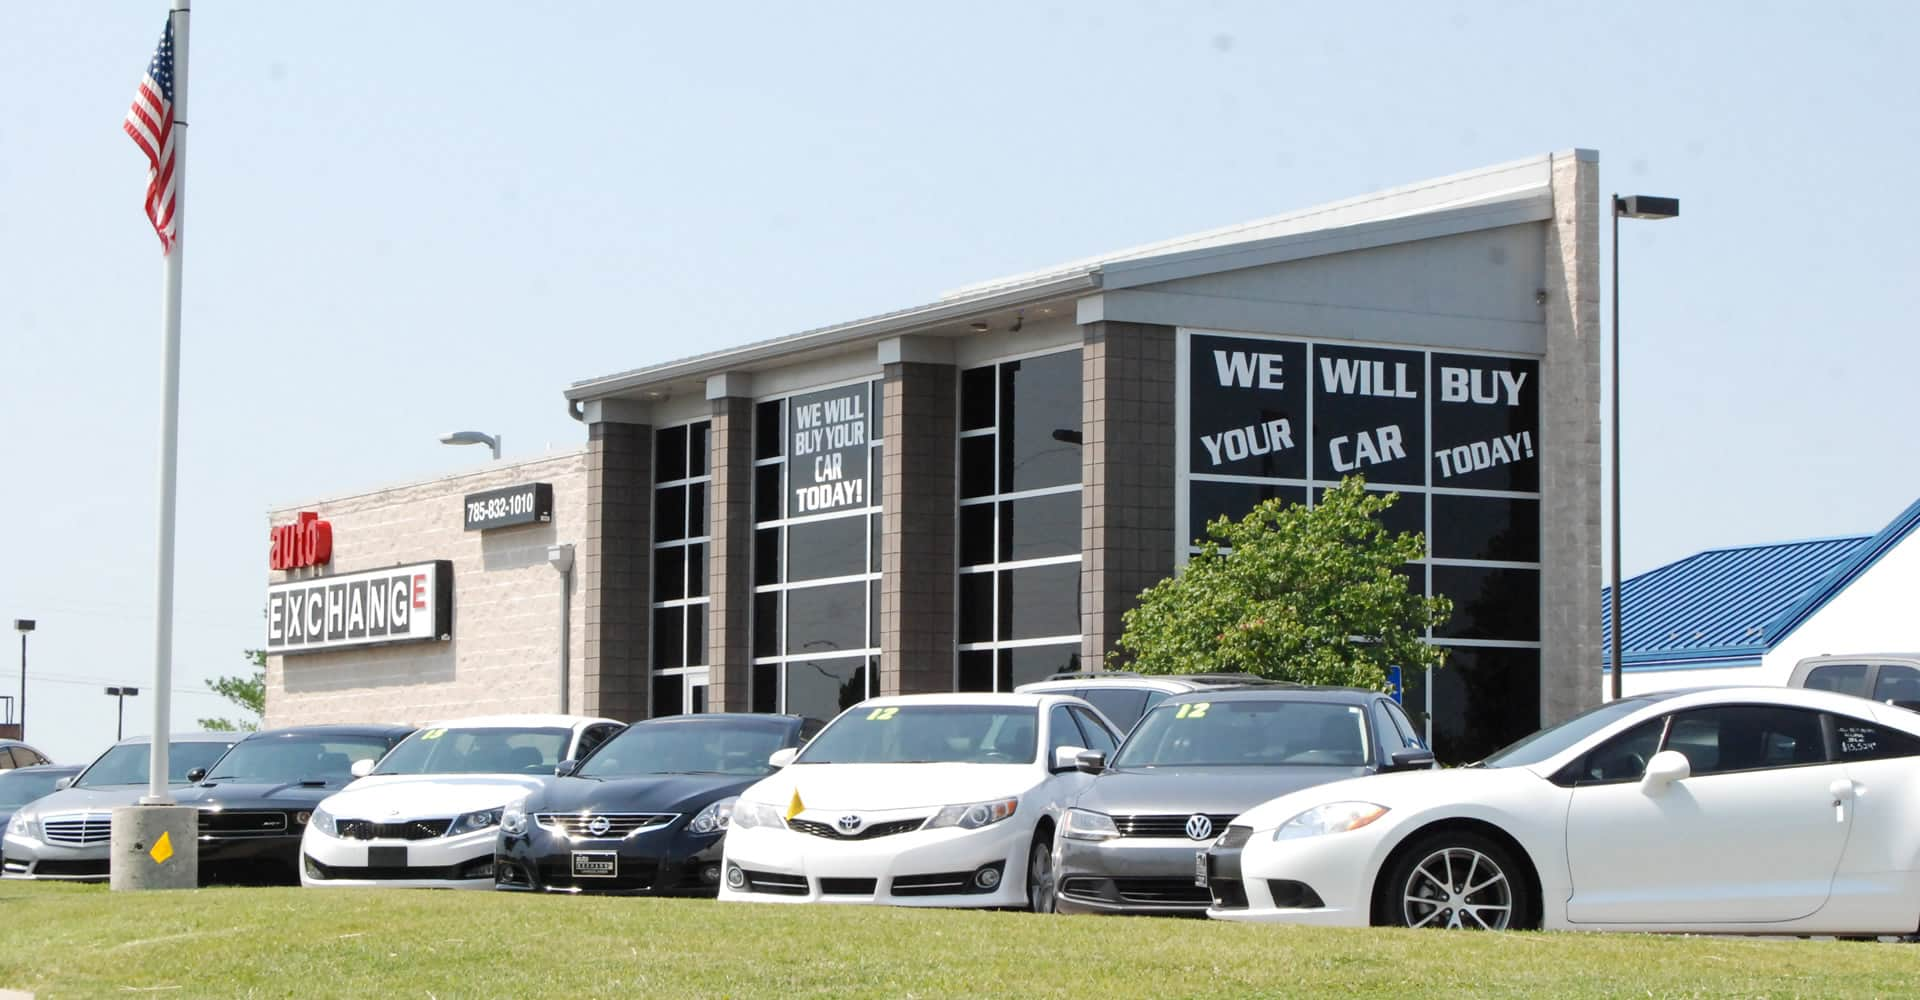 used cars lawrence ks used cars trucks ks auto exchange used cars lawrence ks used cars